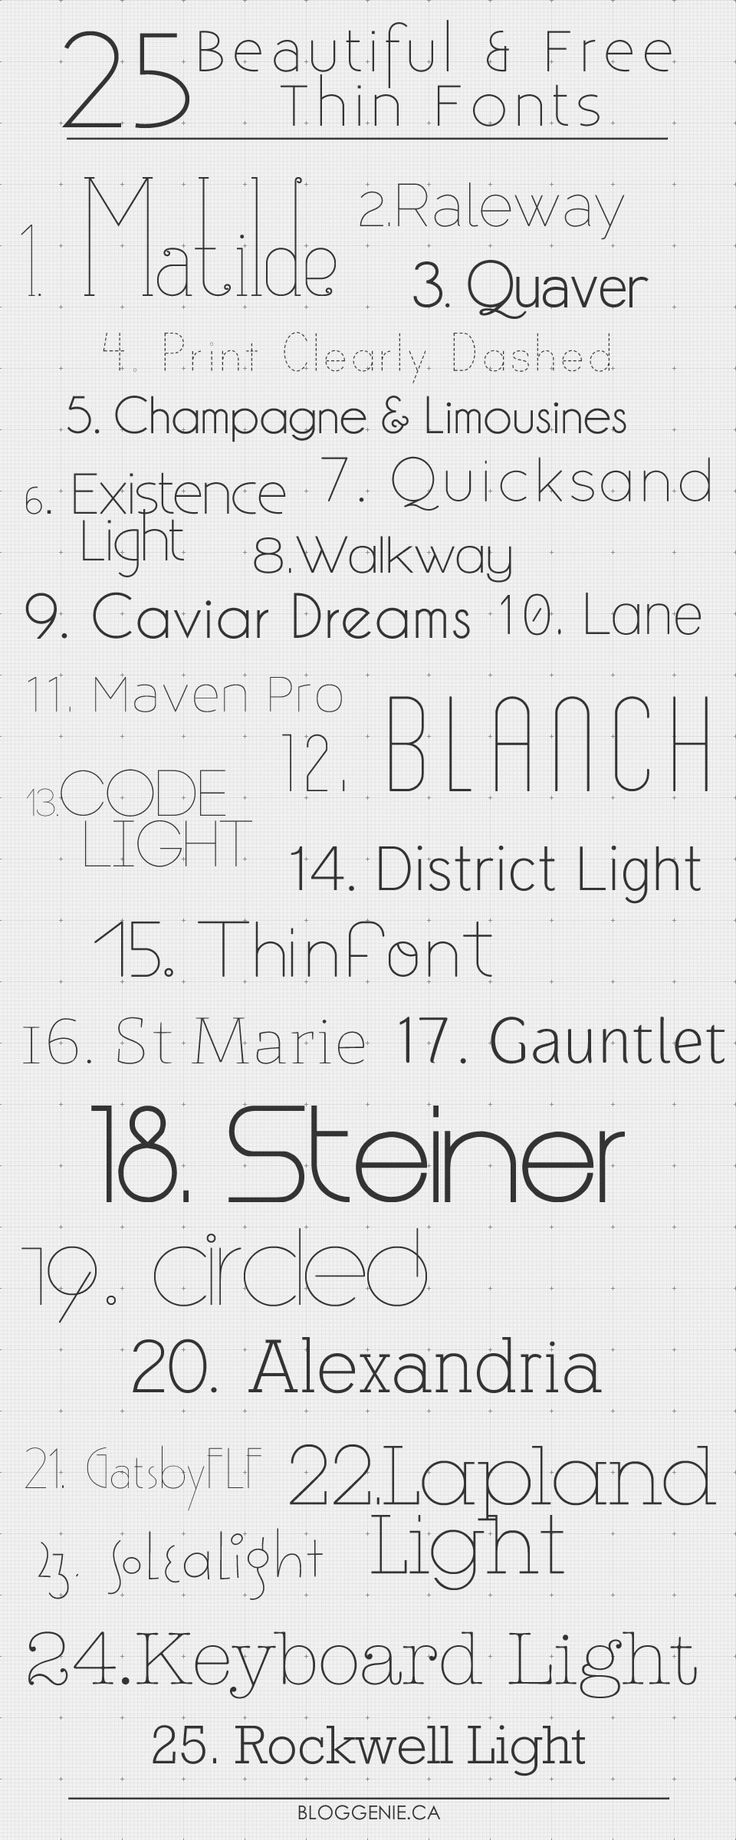 Looking for some thin font-spiration? Look no further than these 25 free thin fonts for your next design project.